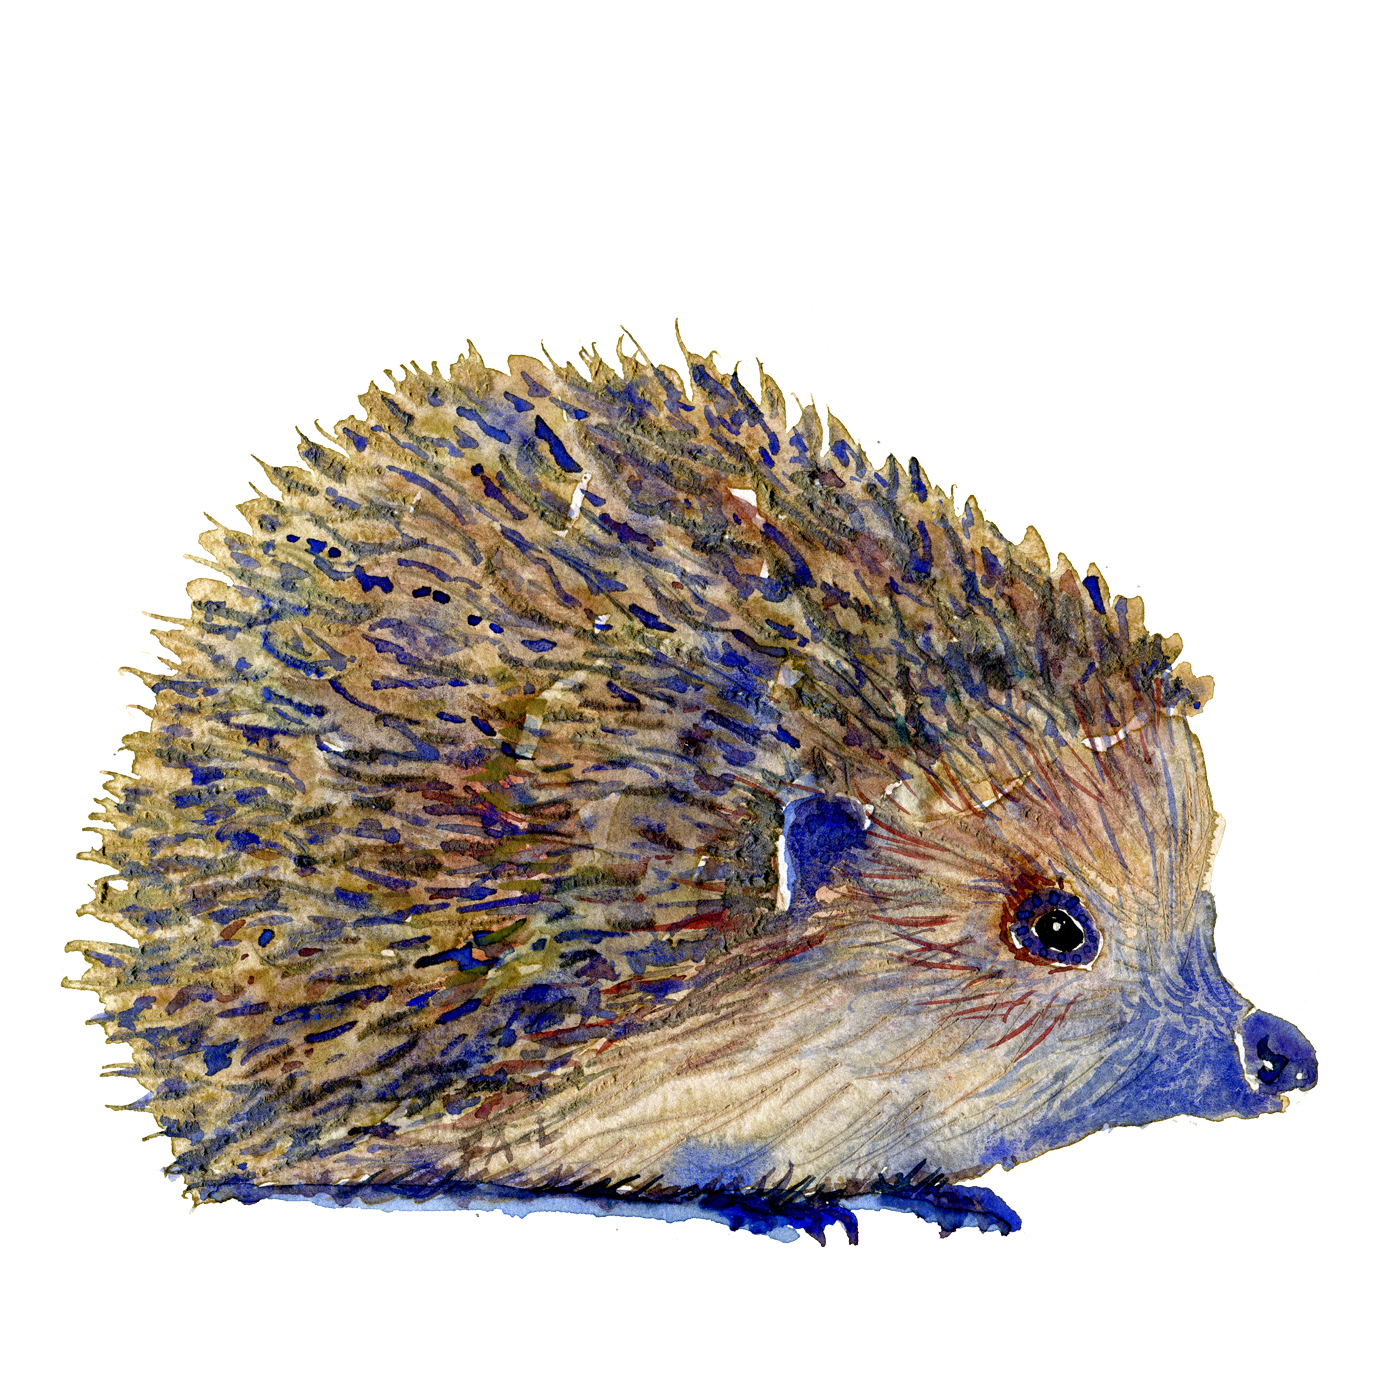 Watercolor of hedgehog, artwork by Frits Ahlefeldt